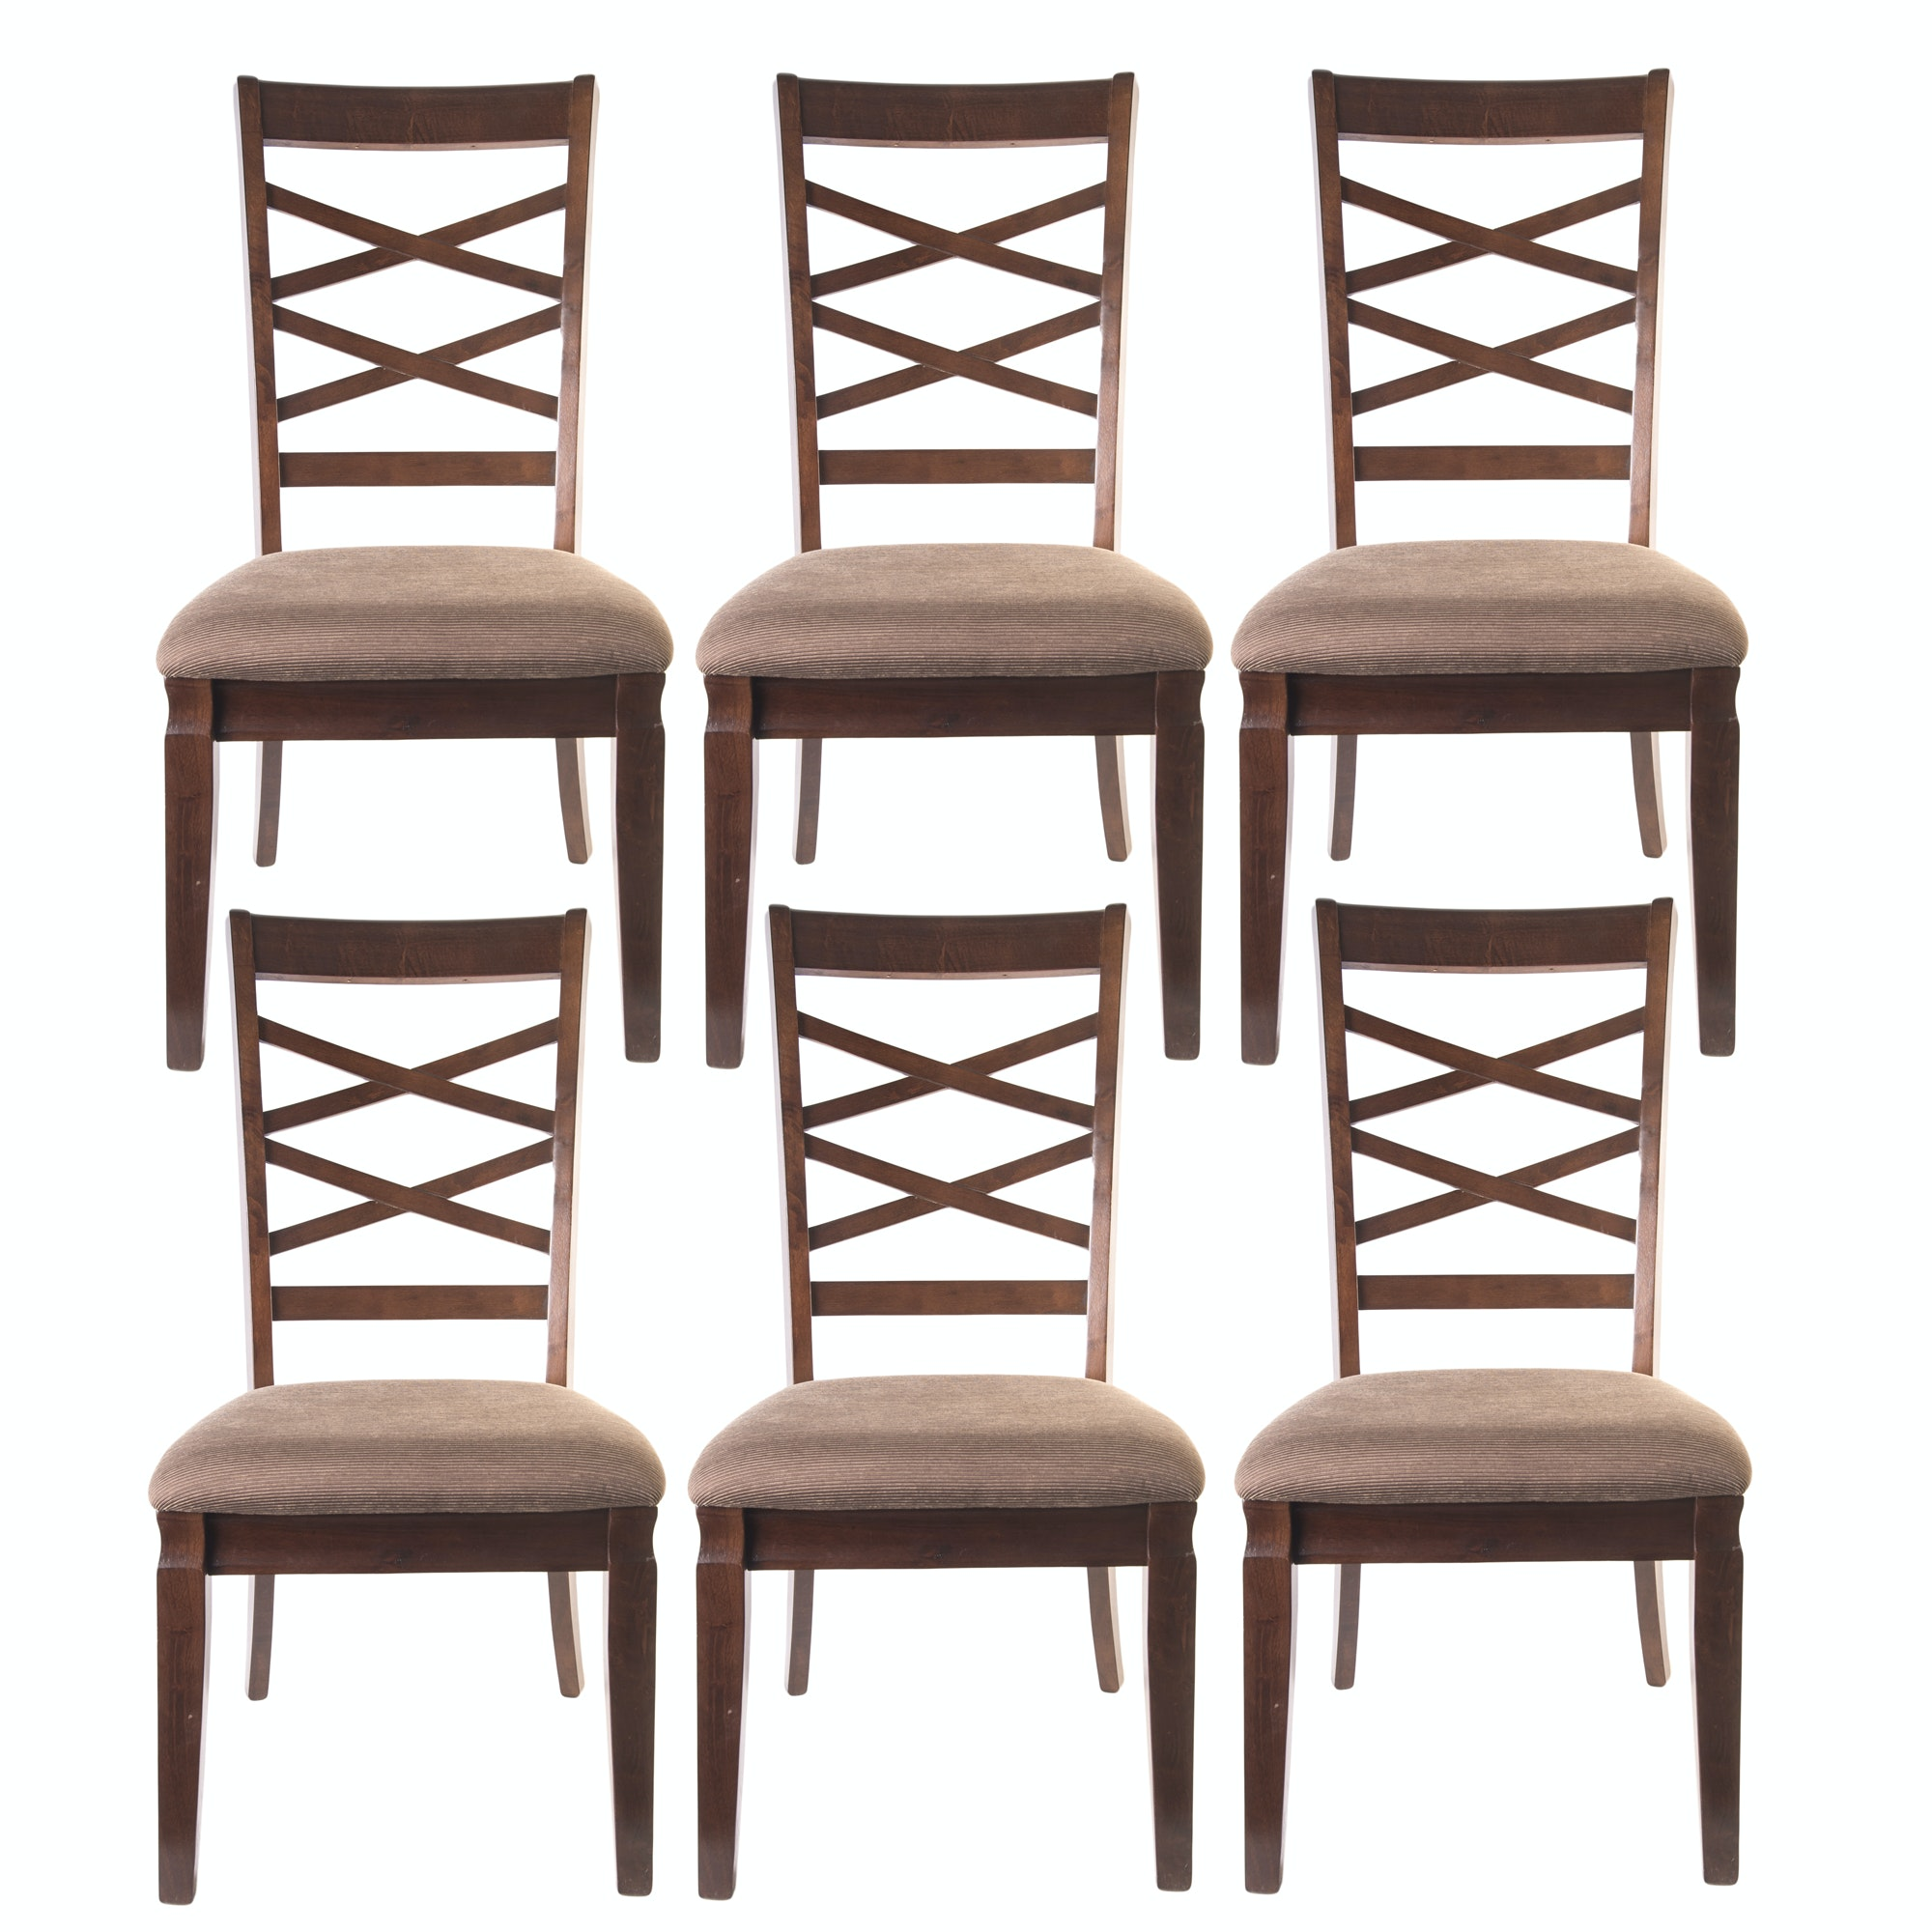 Contemporary Dining Chairs by Ashley Furniture